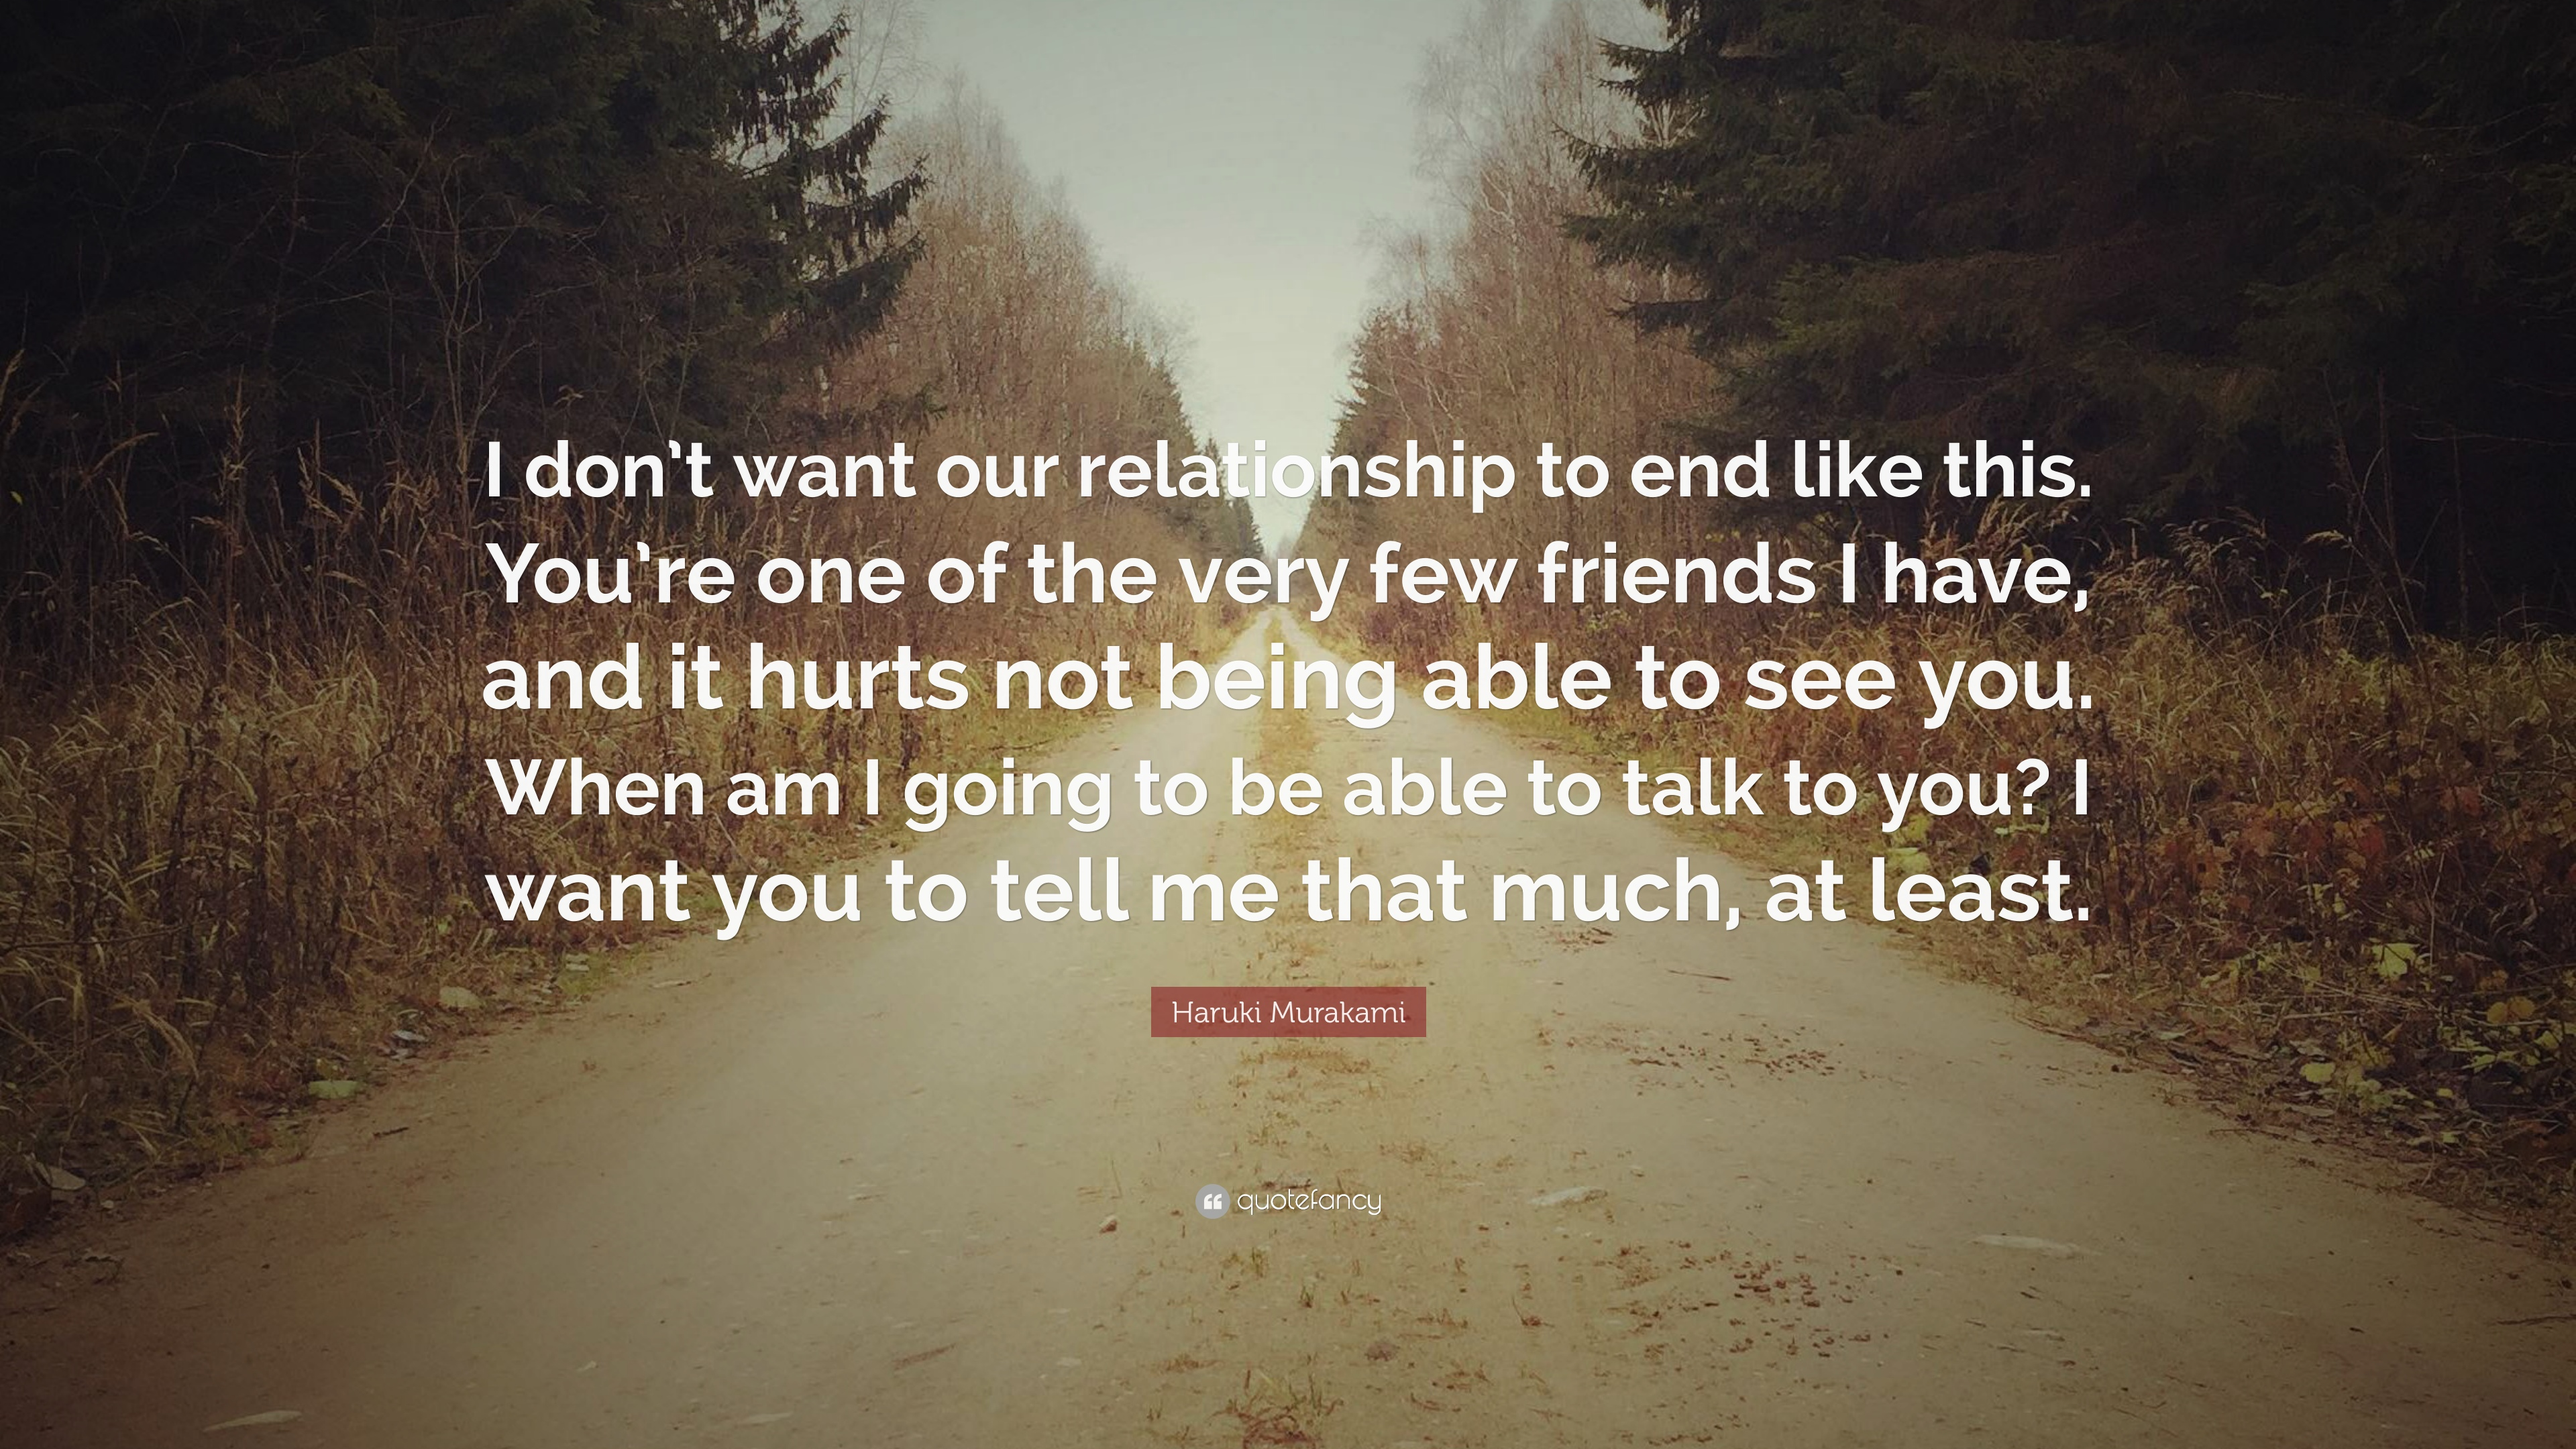 i want to end up our relationship